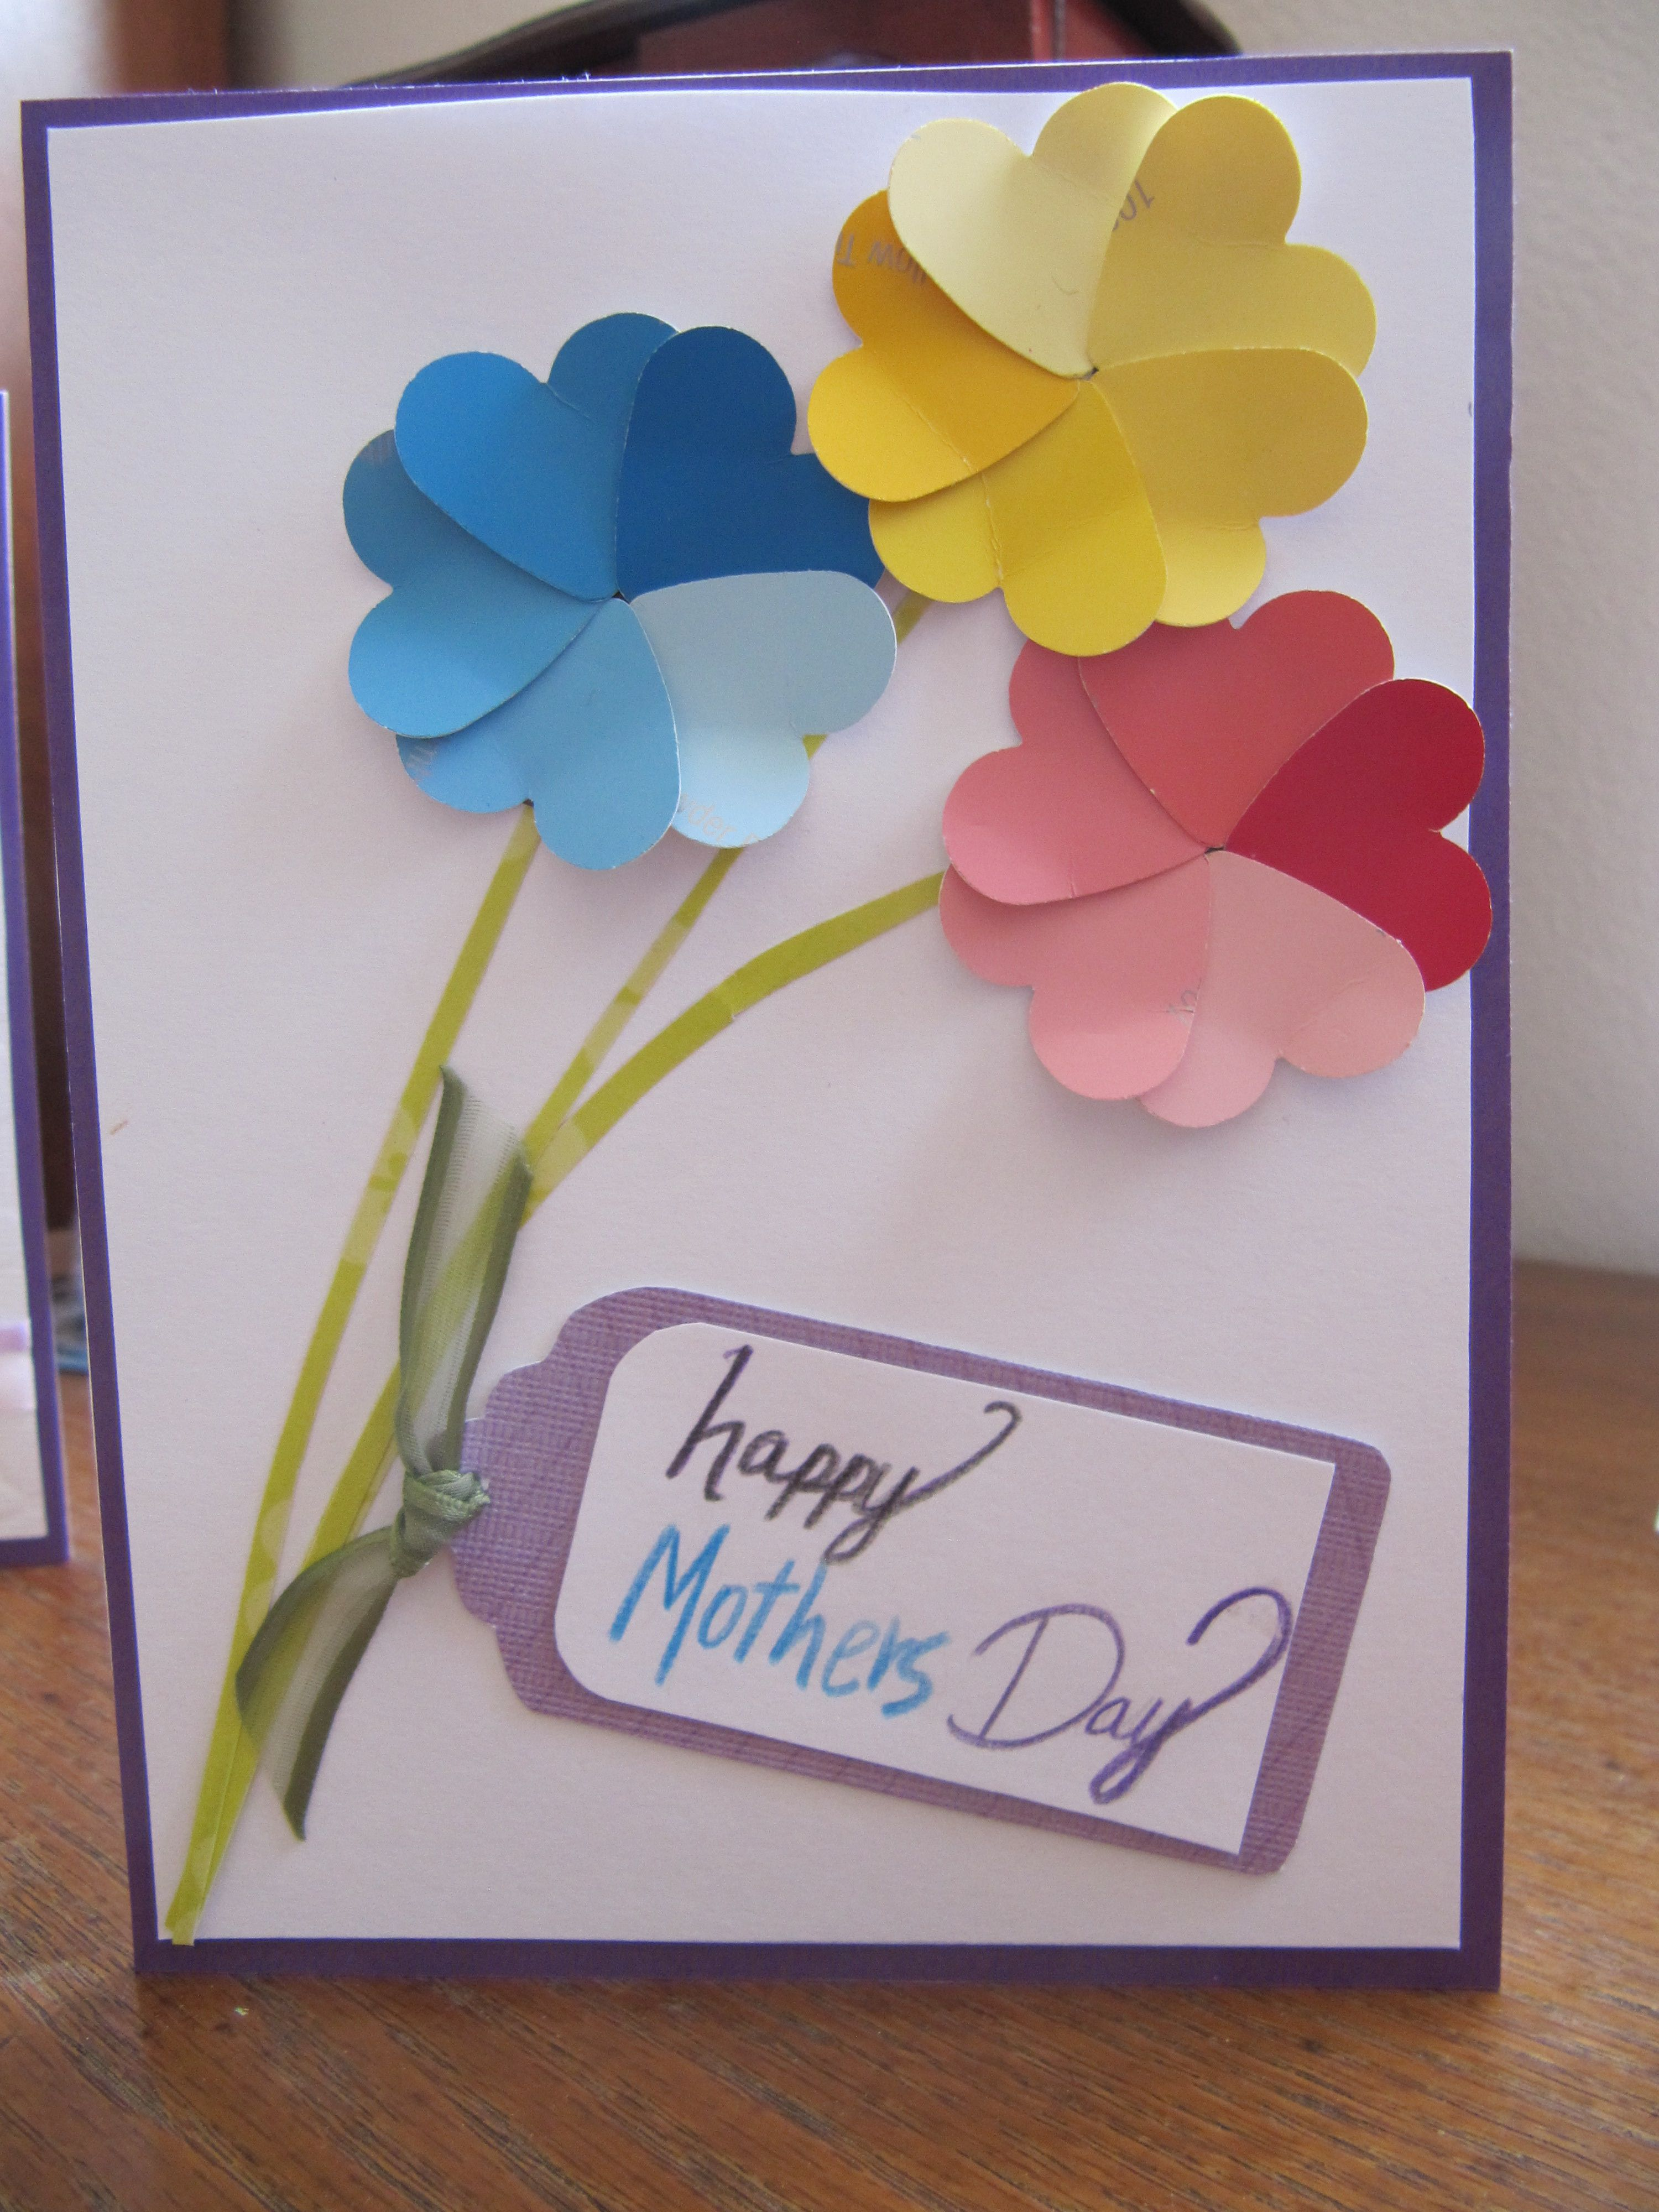 Creative Cake Tea Mothers Day Crafts Mother S Day Diy Mothers Day Cards